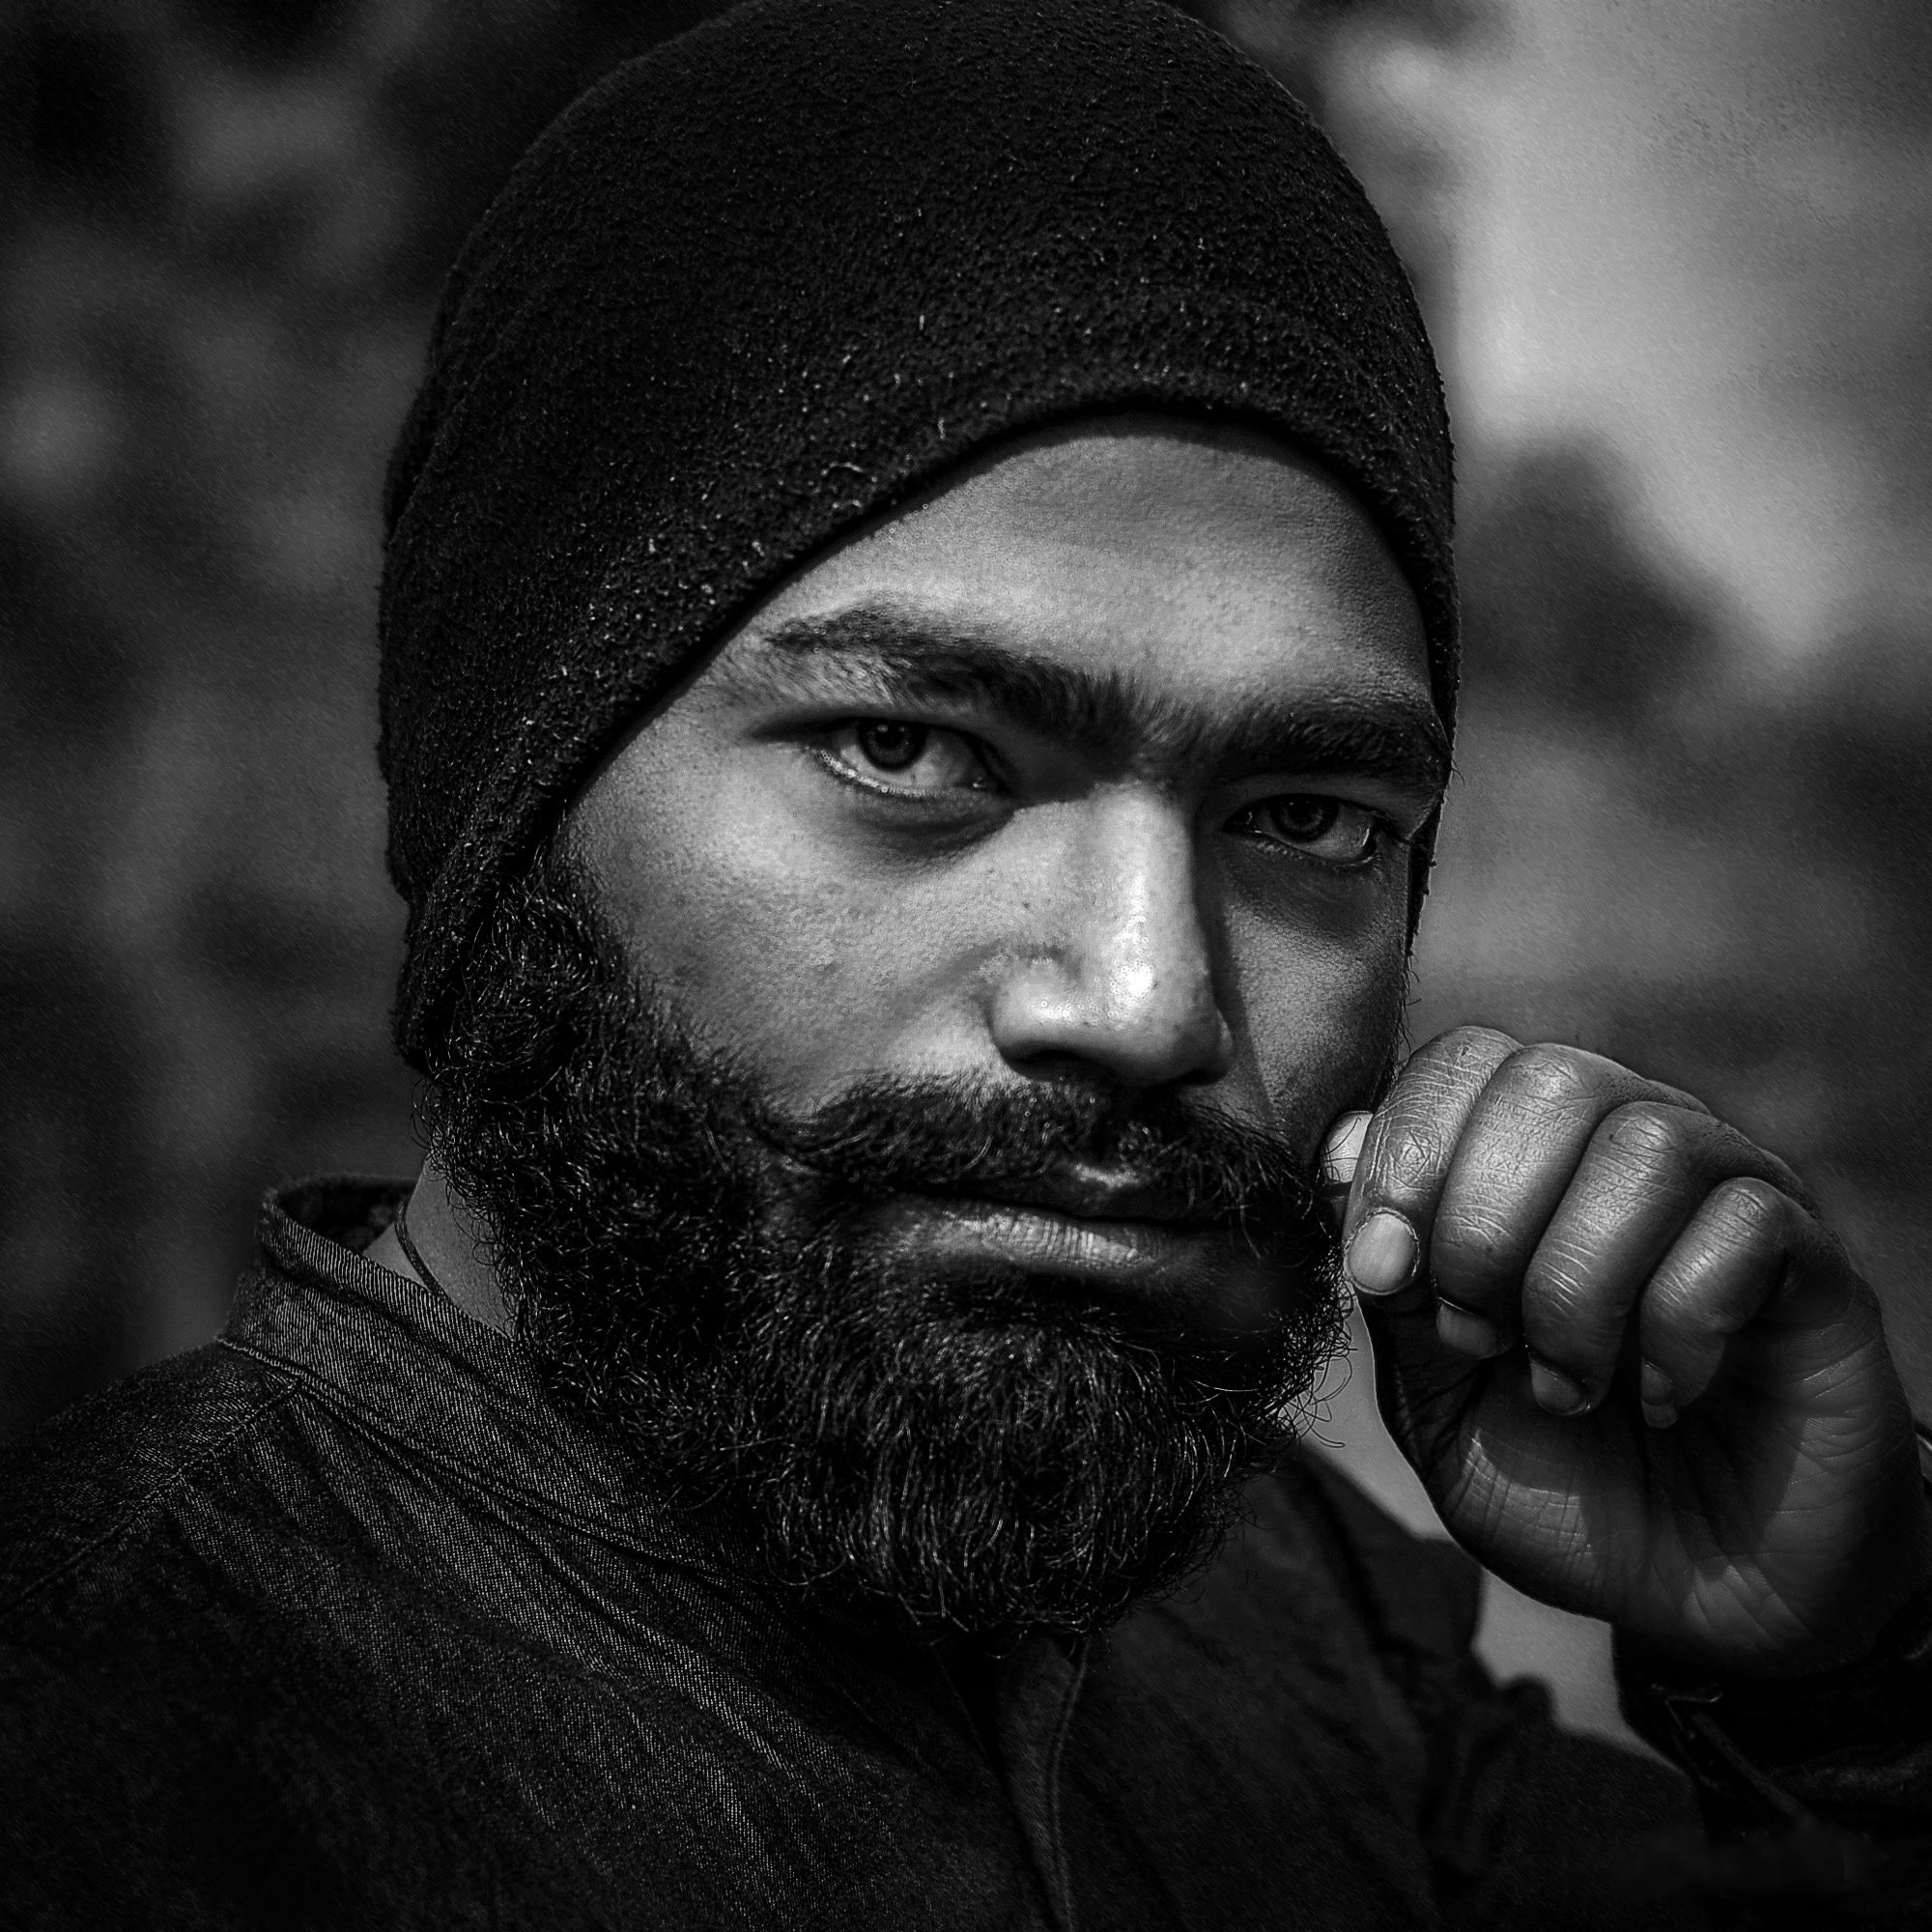 gray scale photography of man wearing hat